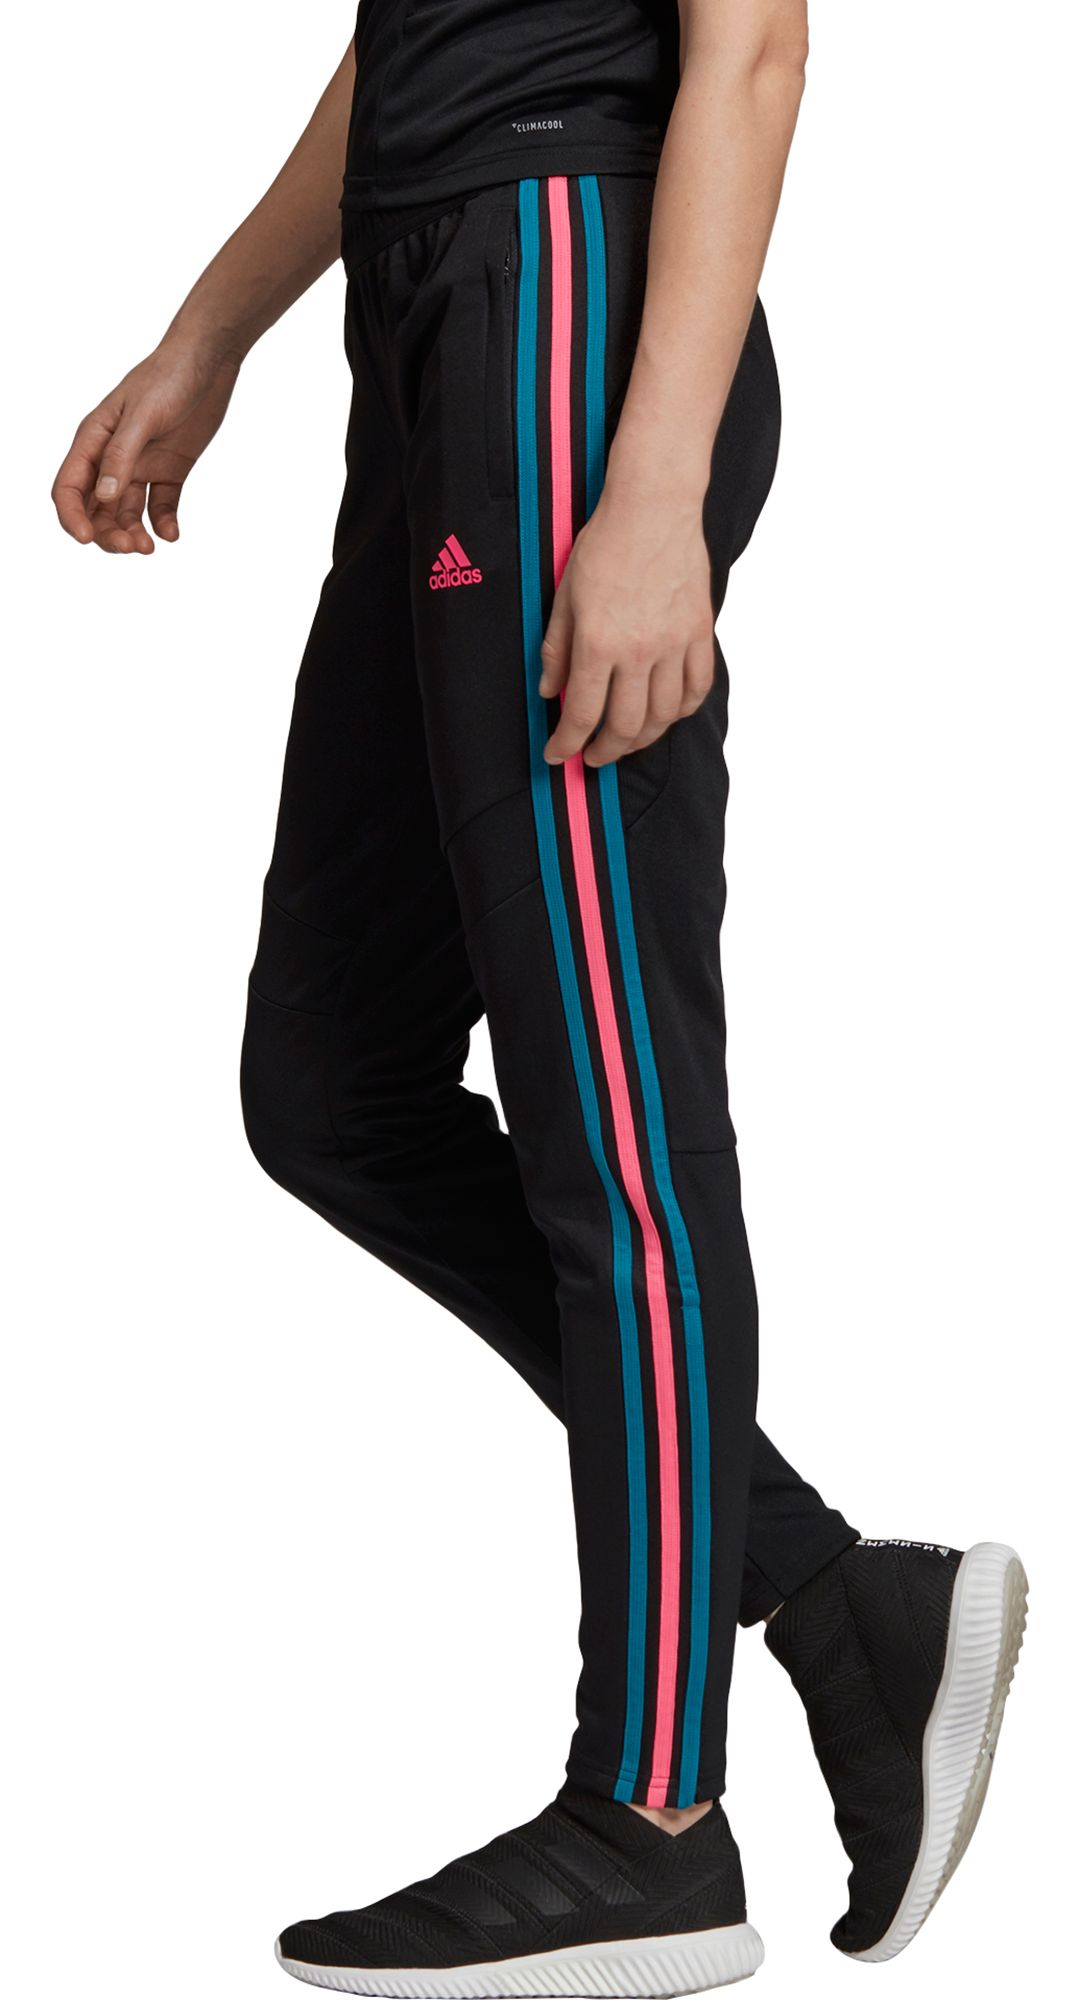 3e82a40a55 adidas Women's Tiro 19 Training Pants | DICK'S Sporting Goods